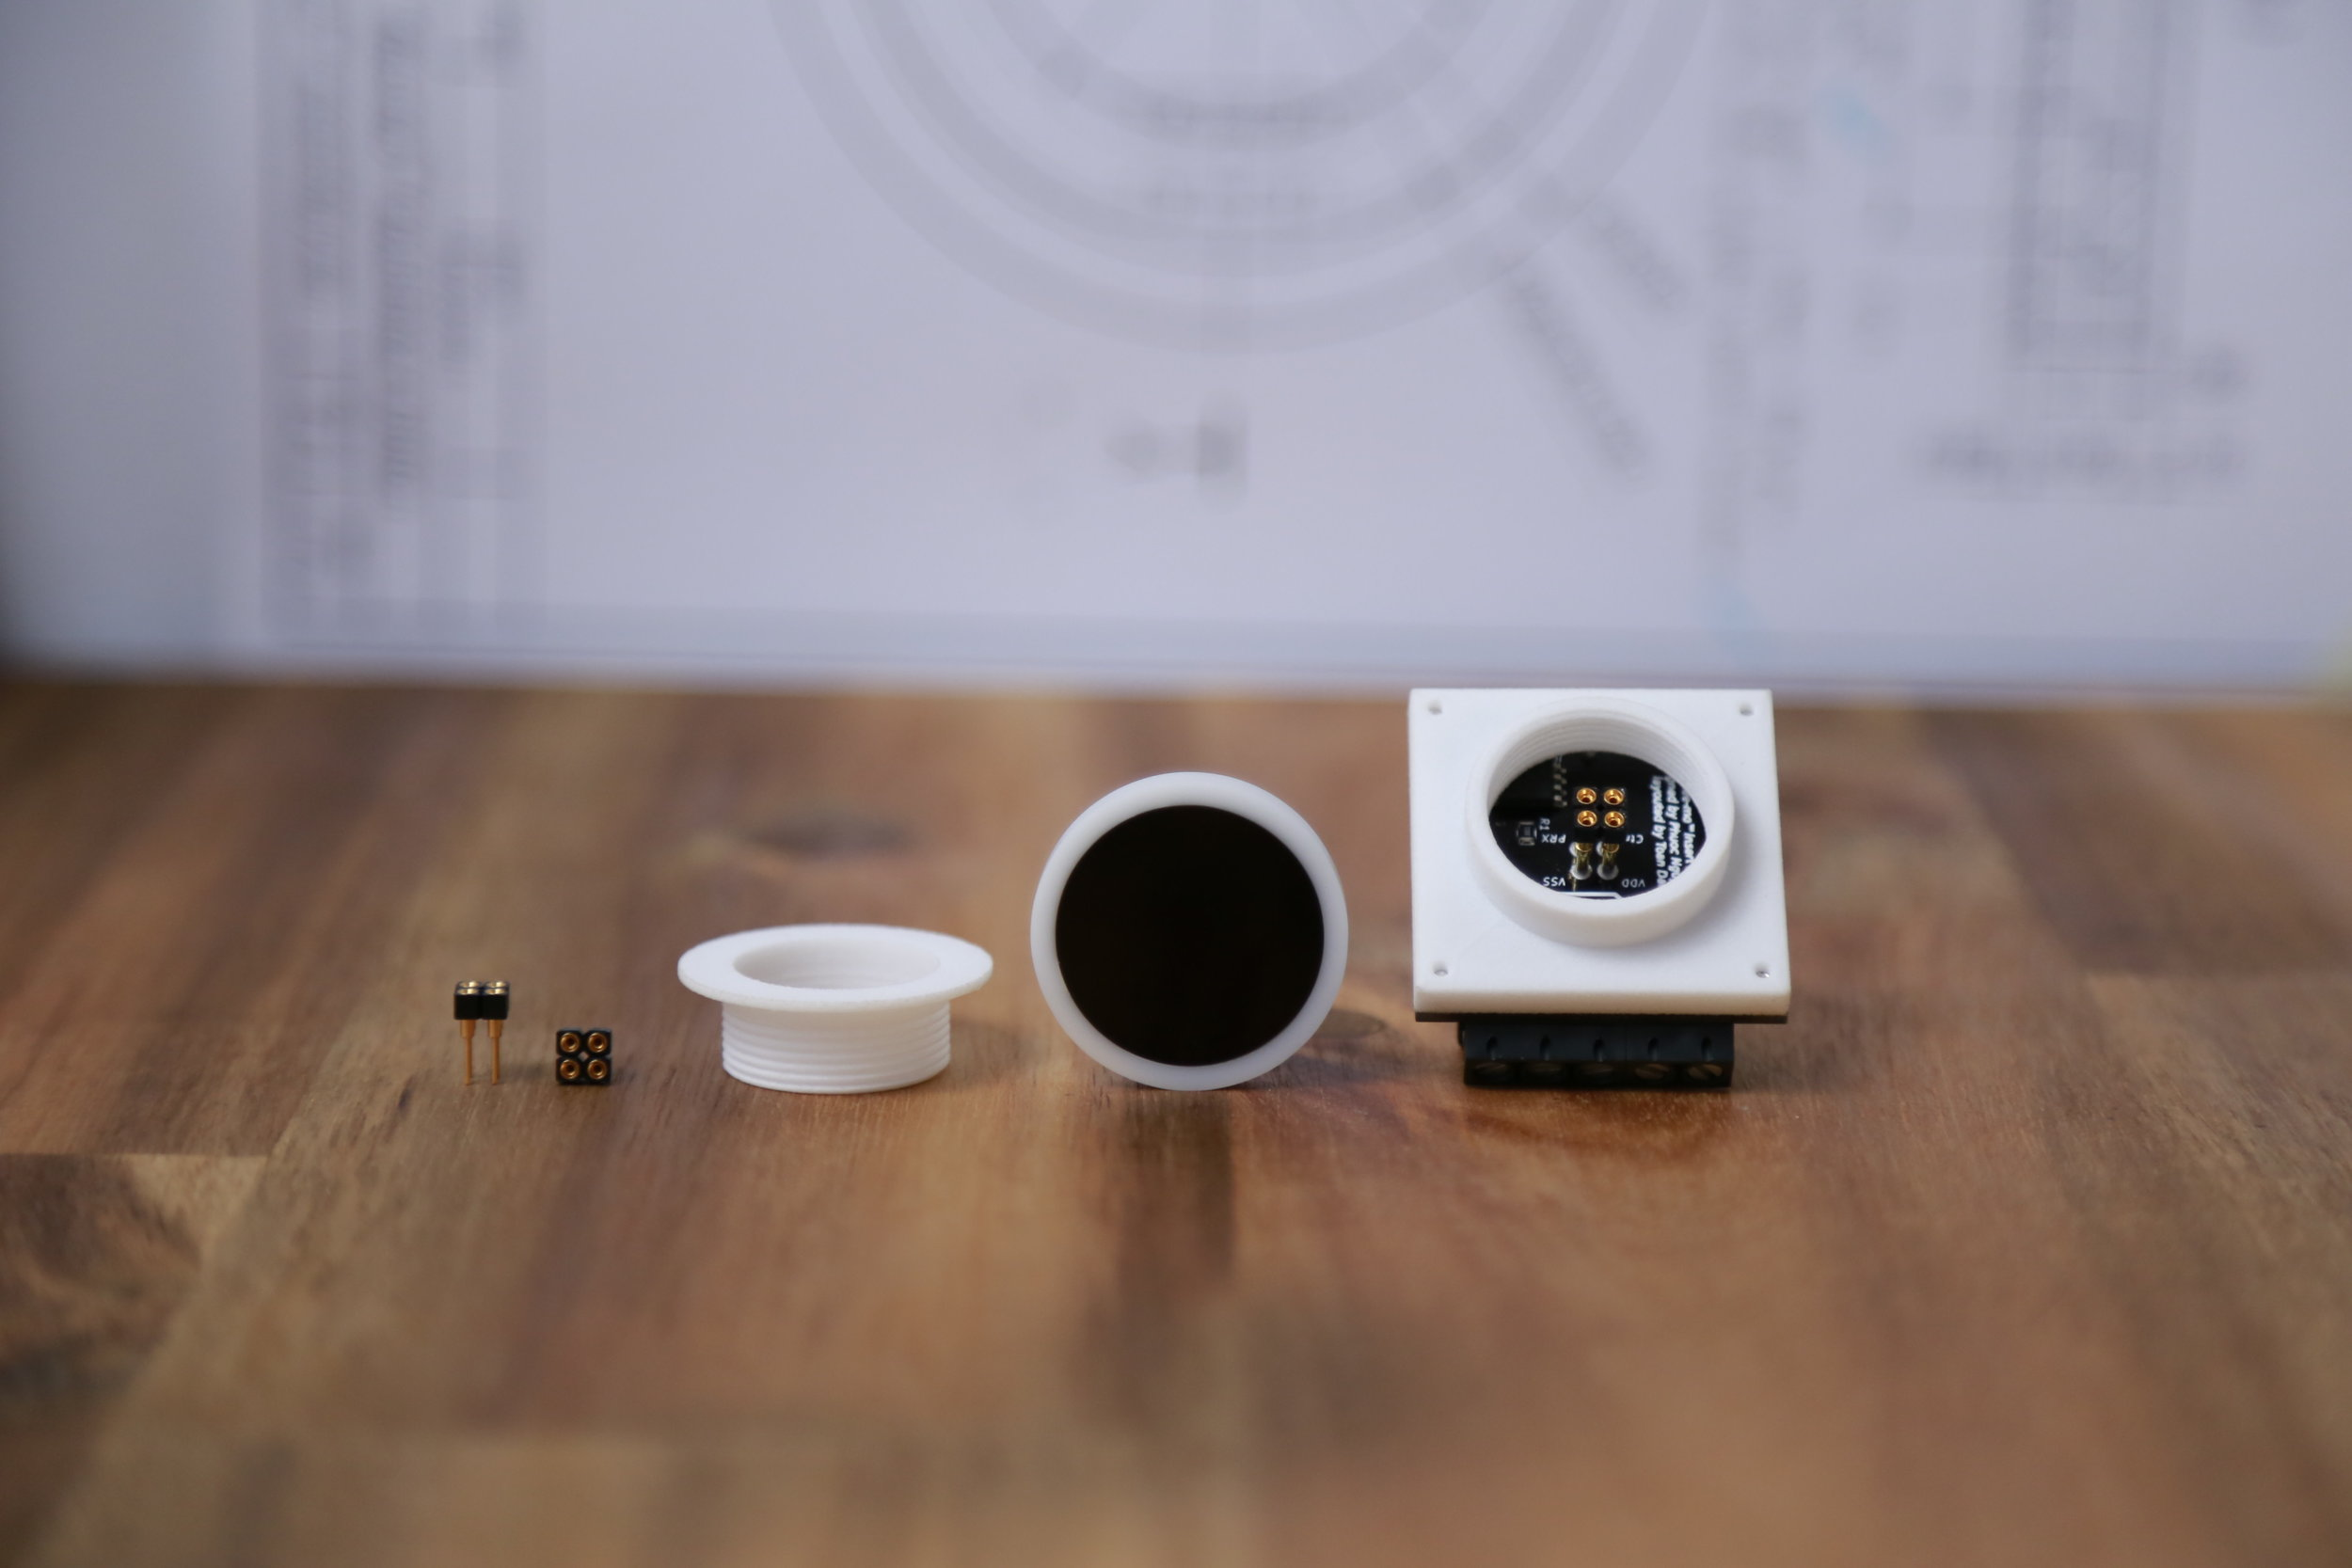 Parts identification of the flee-mo™ touchless switch  (From left)  2 x interconnect socket strips, 3D printing threaded cap, UI and insert with case